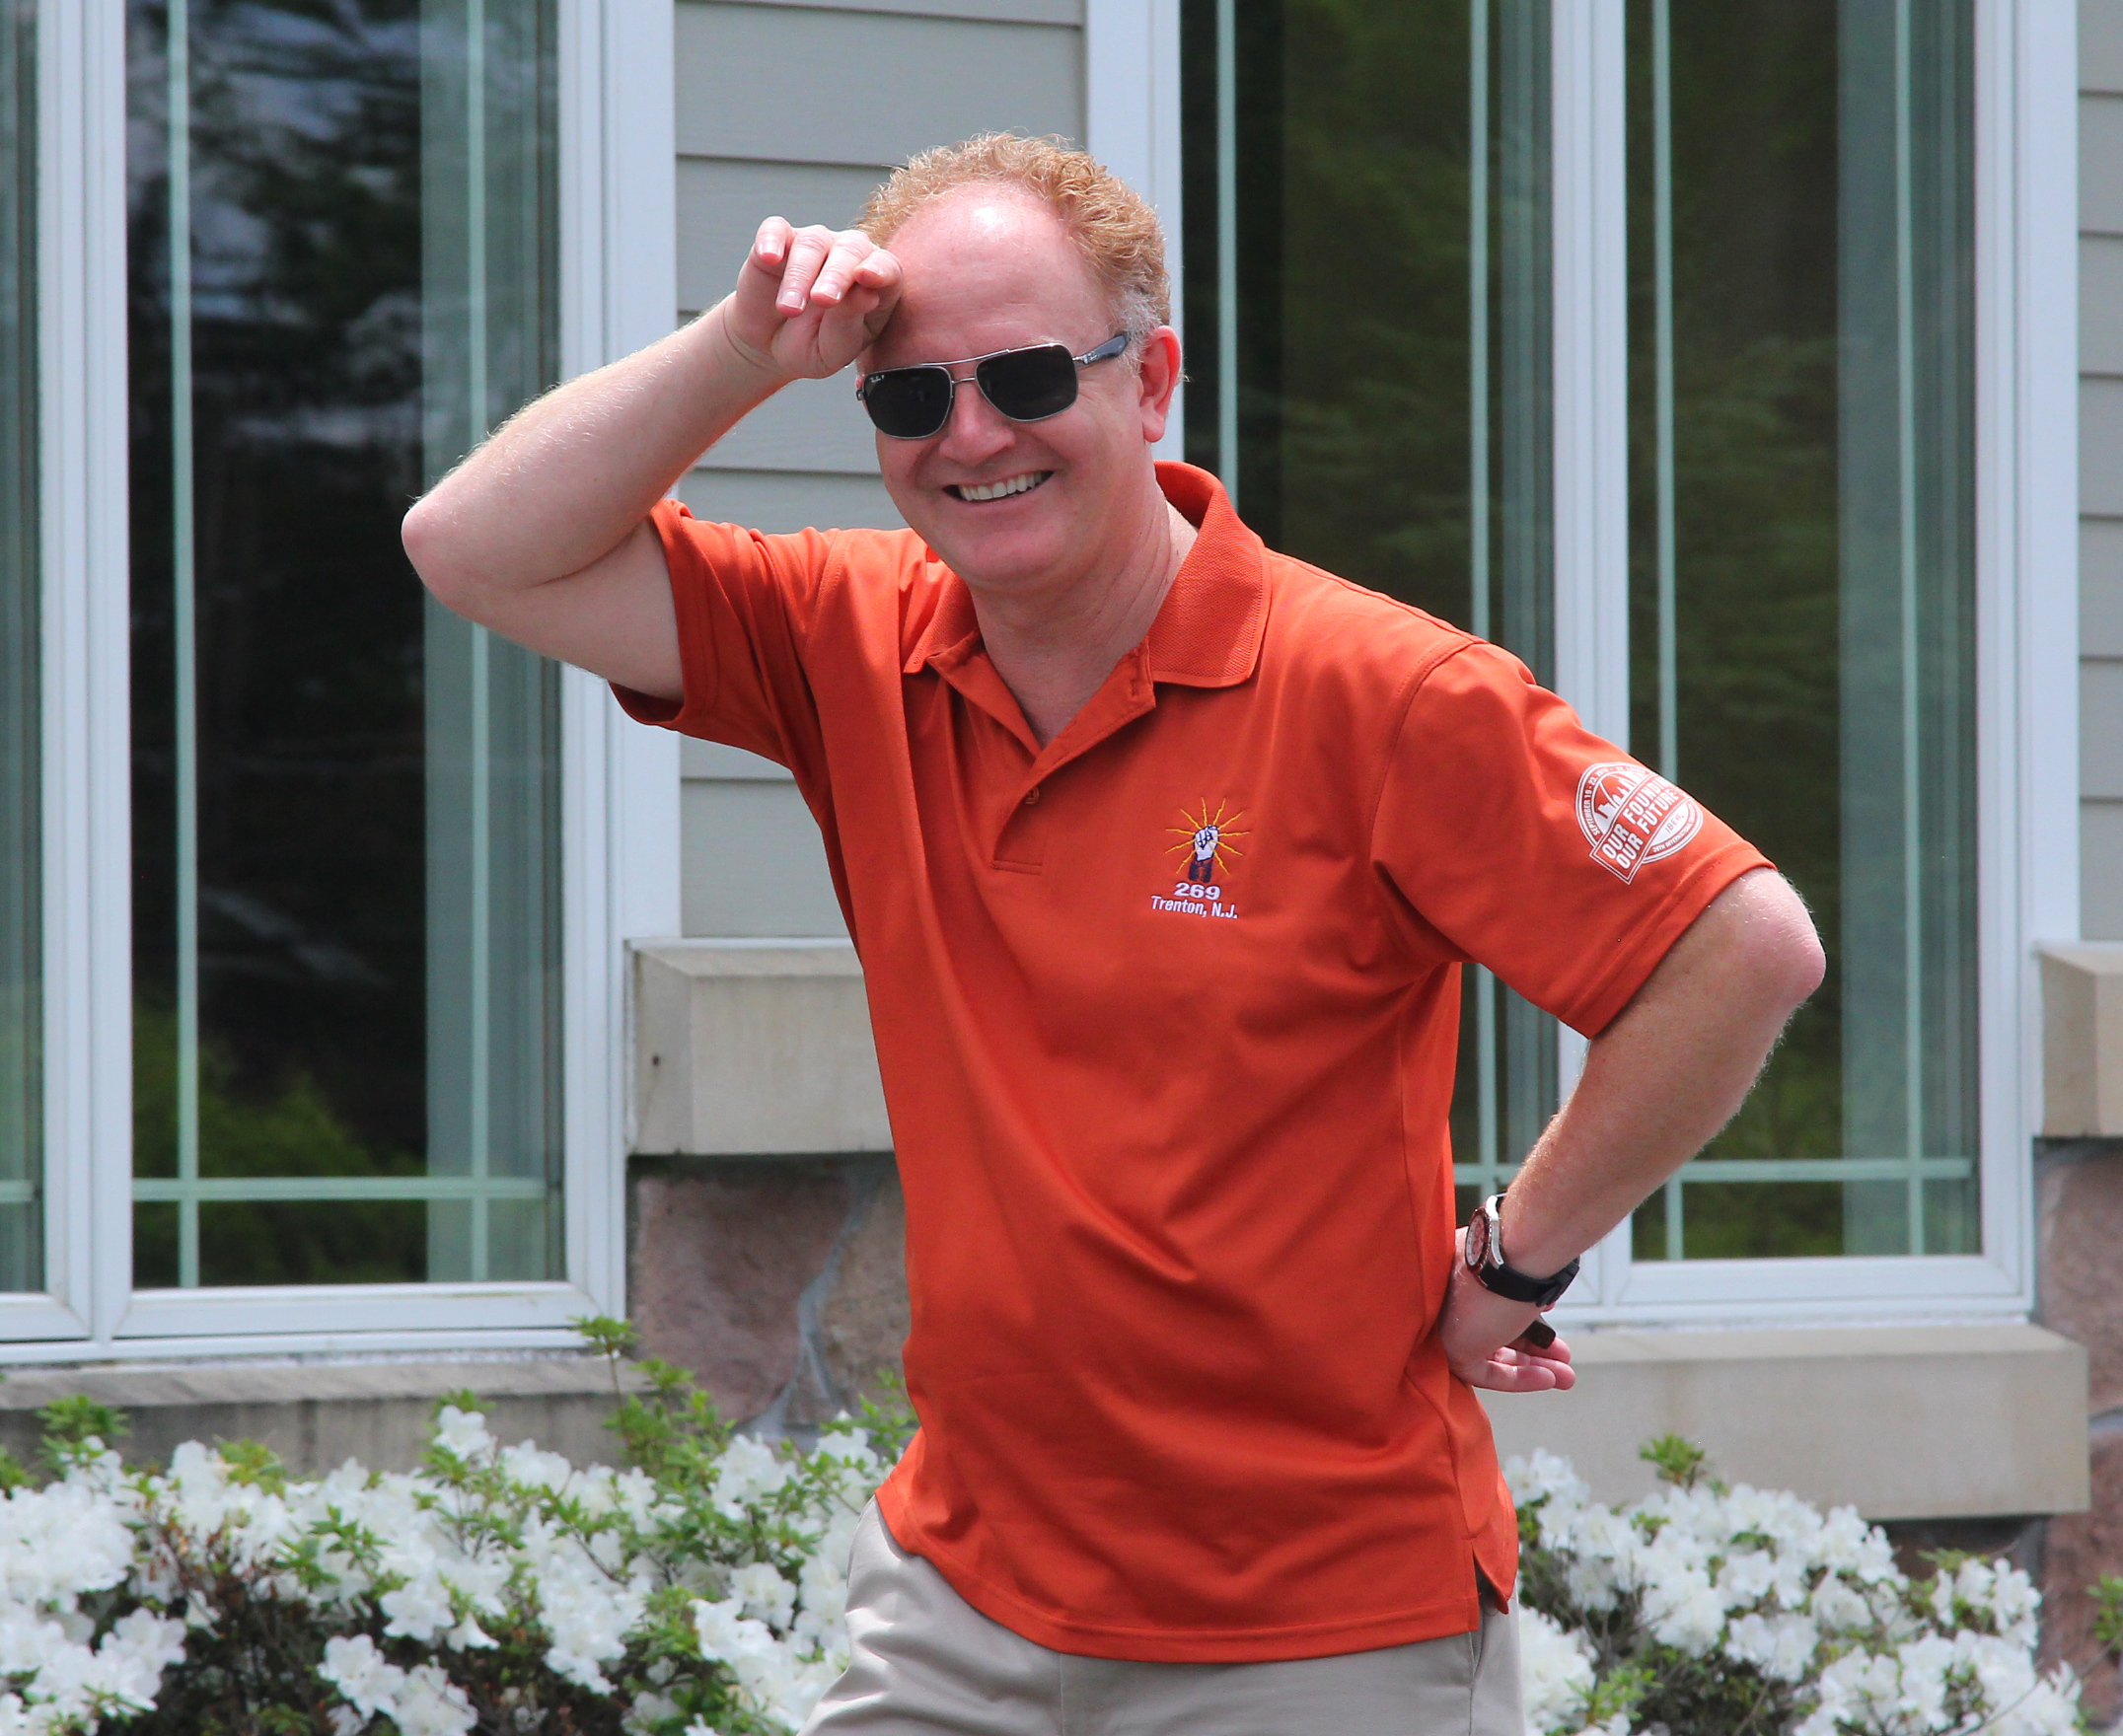 Wayne P. DeAngelo Golf Outing, May 24, 2017, Mountain View Golf Club. Wayne DeAngelo gets a kick out of watching golfers race to their tees as did everyone nearby.